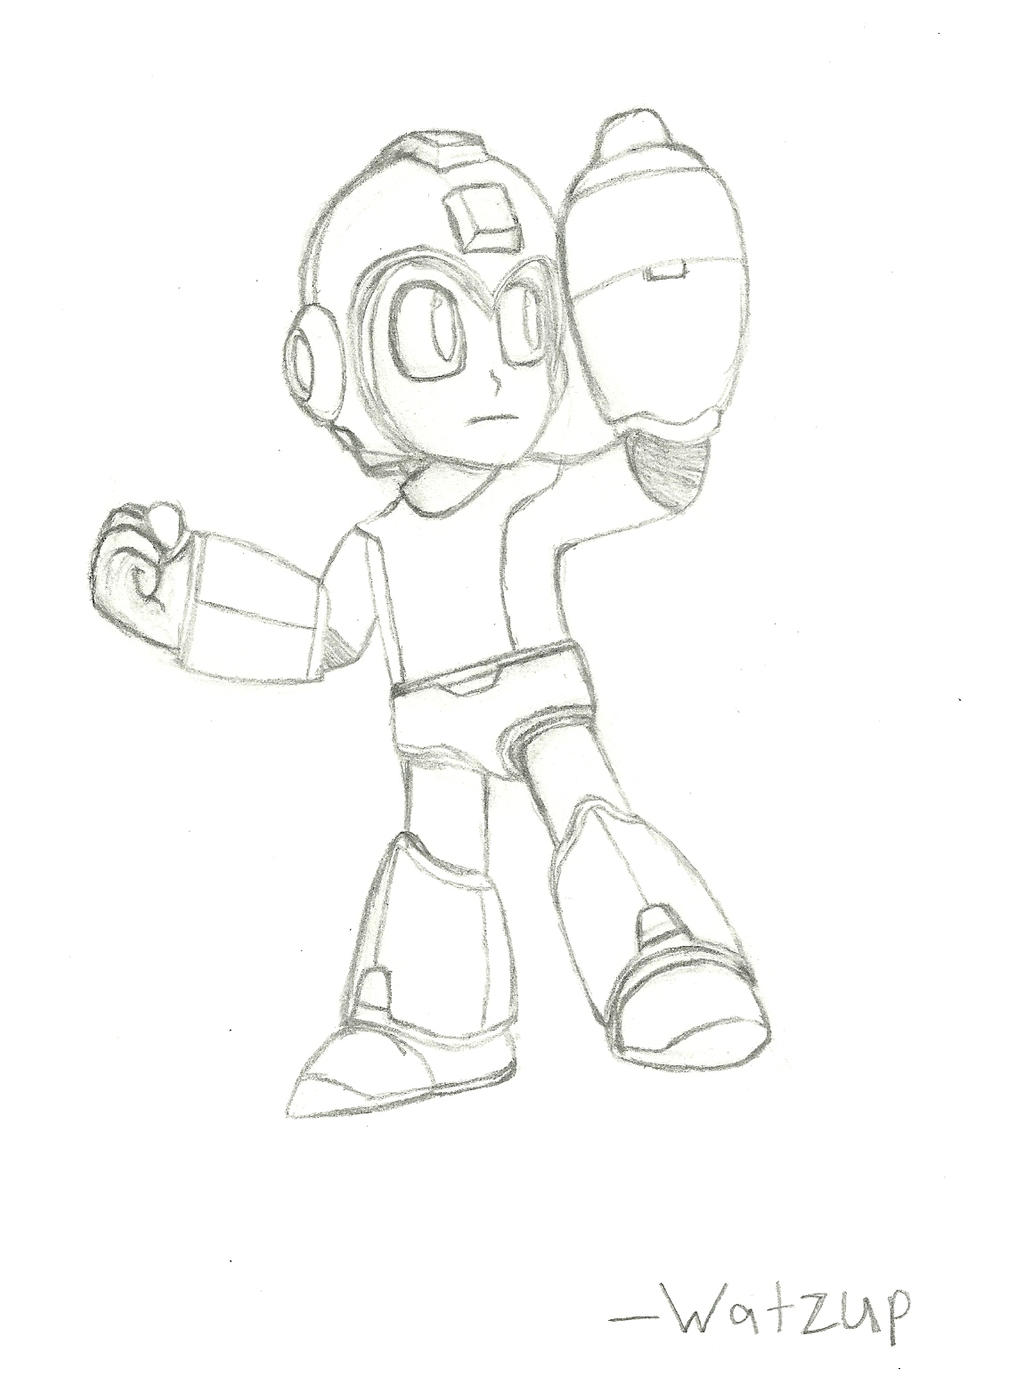 super smash bros for wii u 3ds character mega man by watzup7856